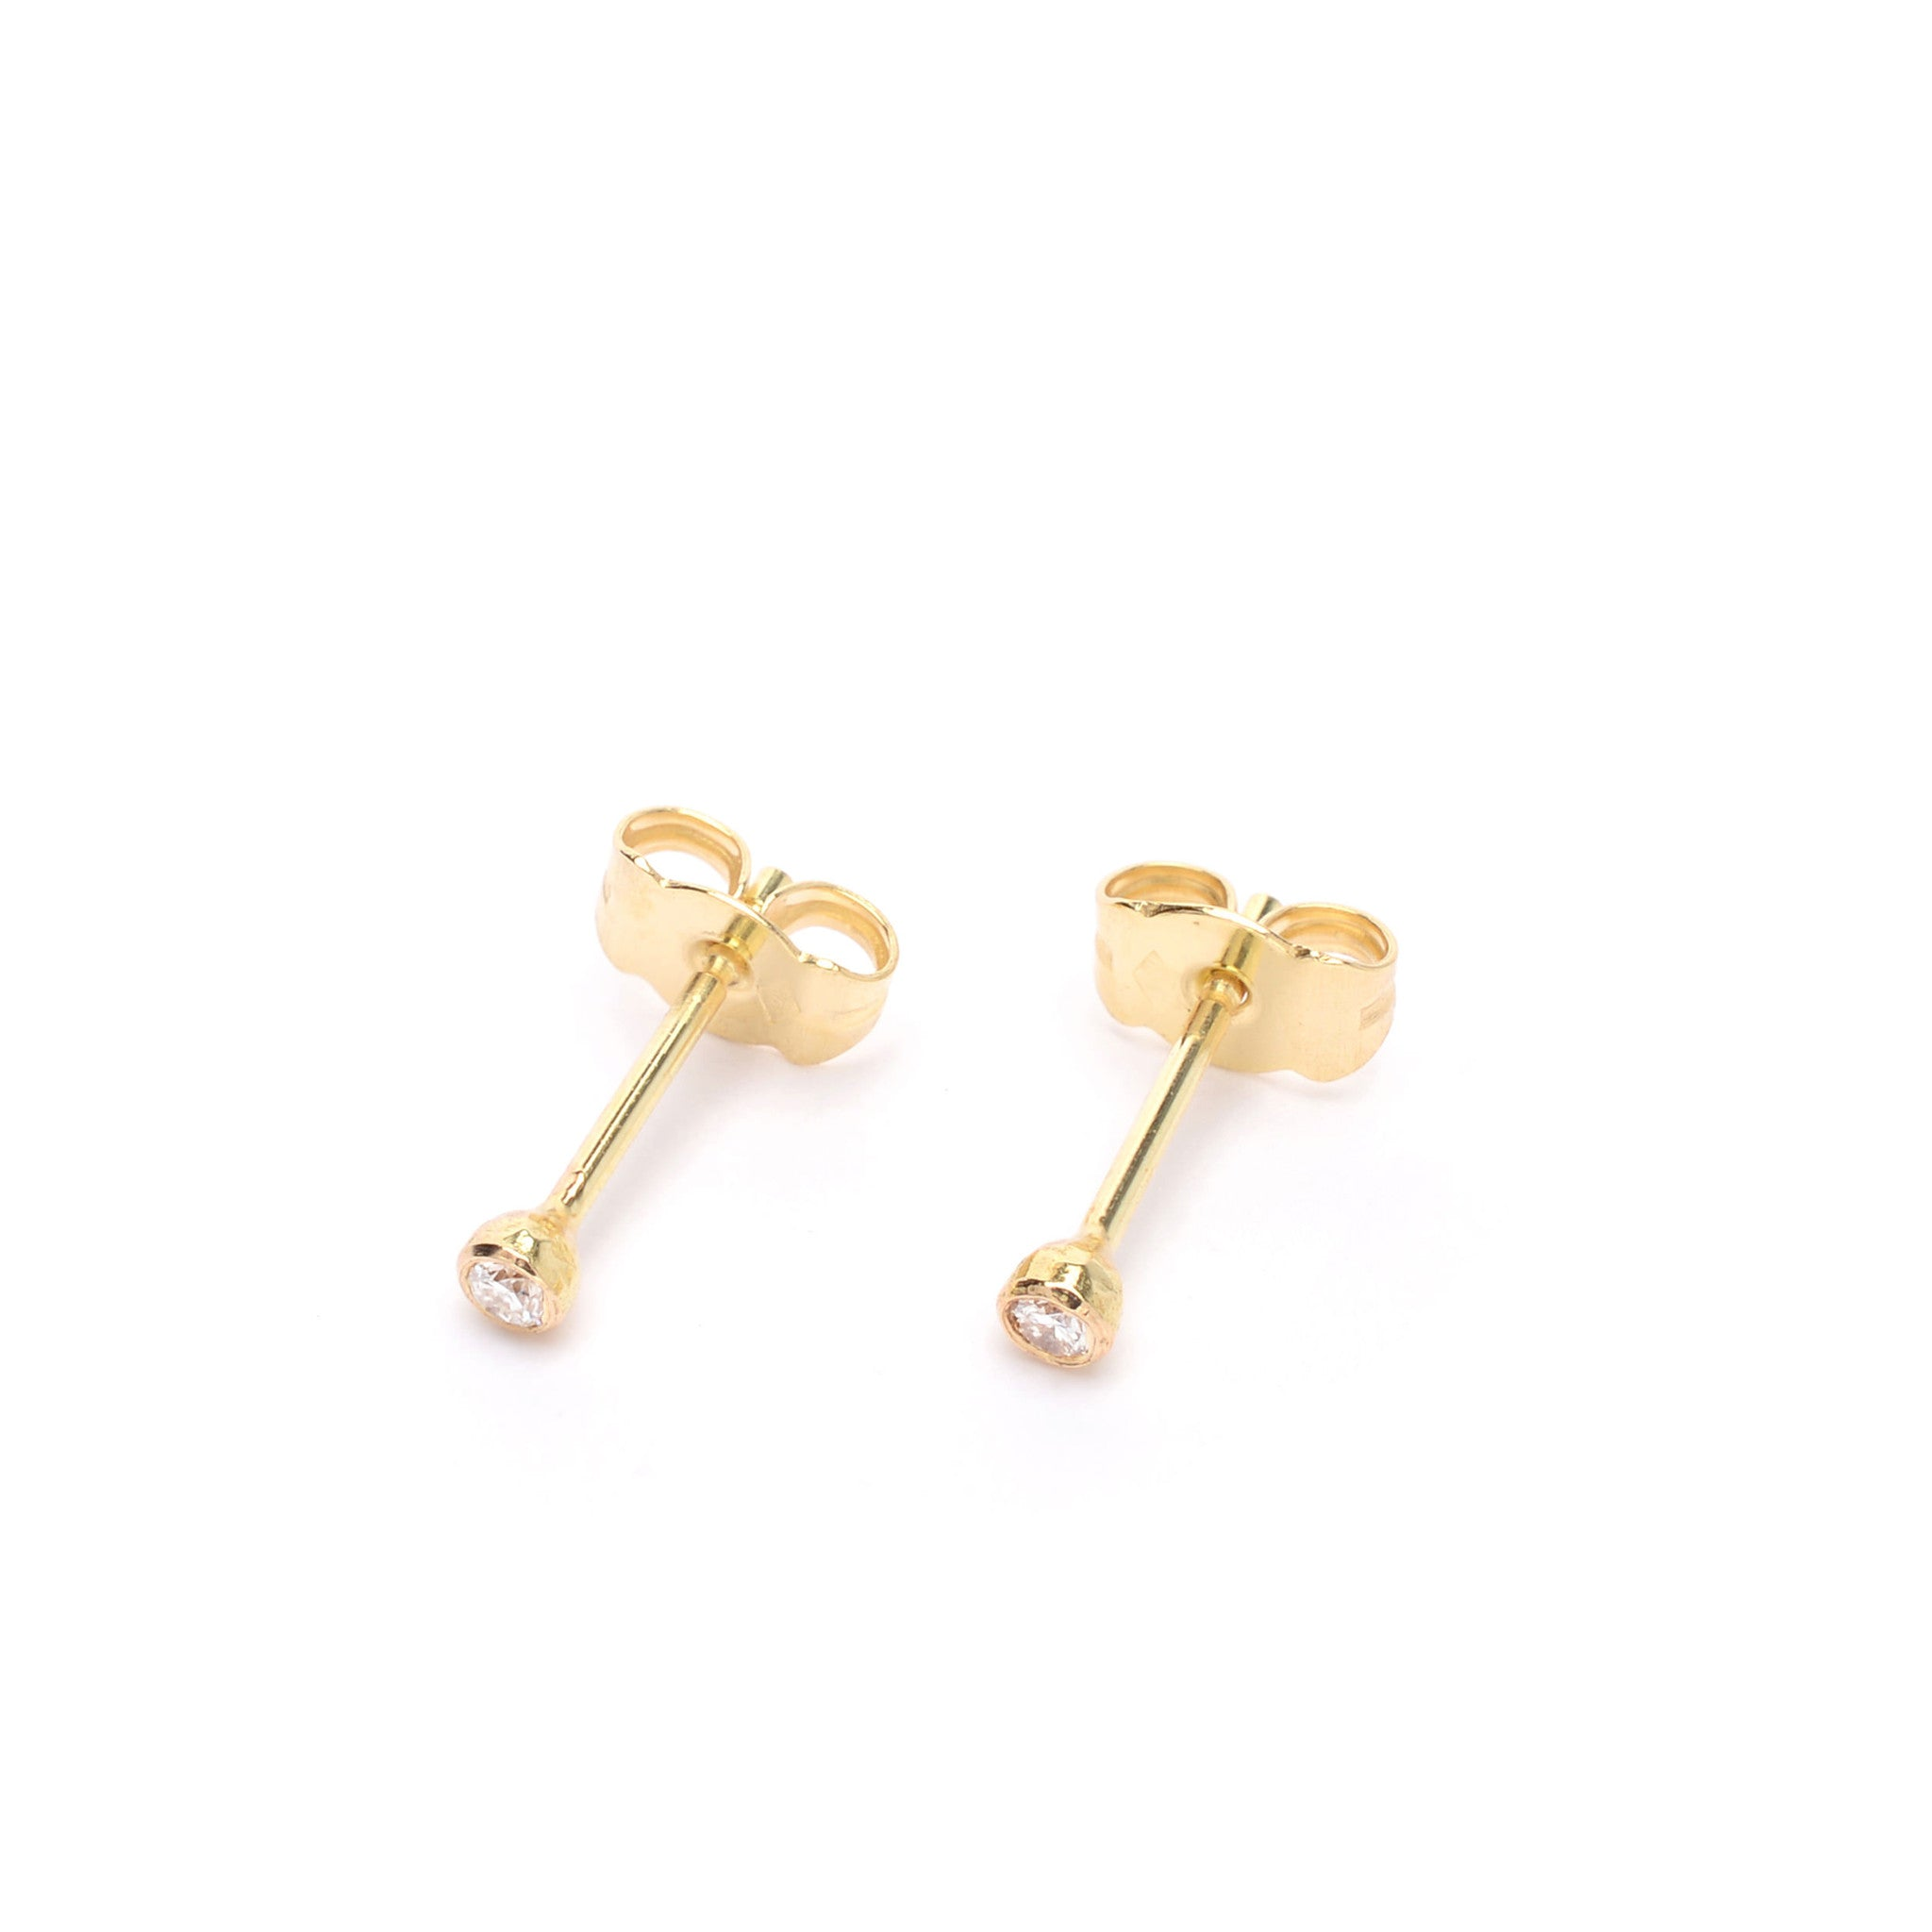 18kt Gold stud earrings with White Diamond